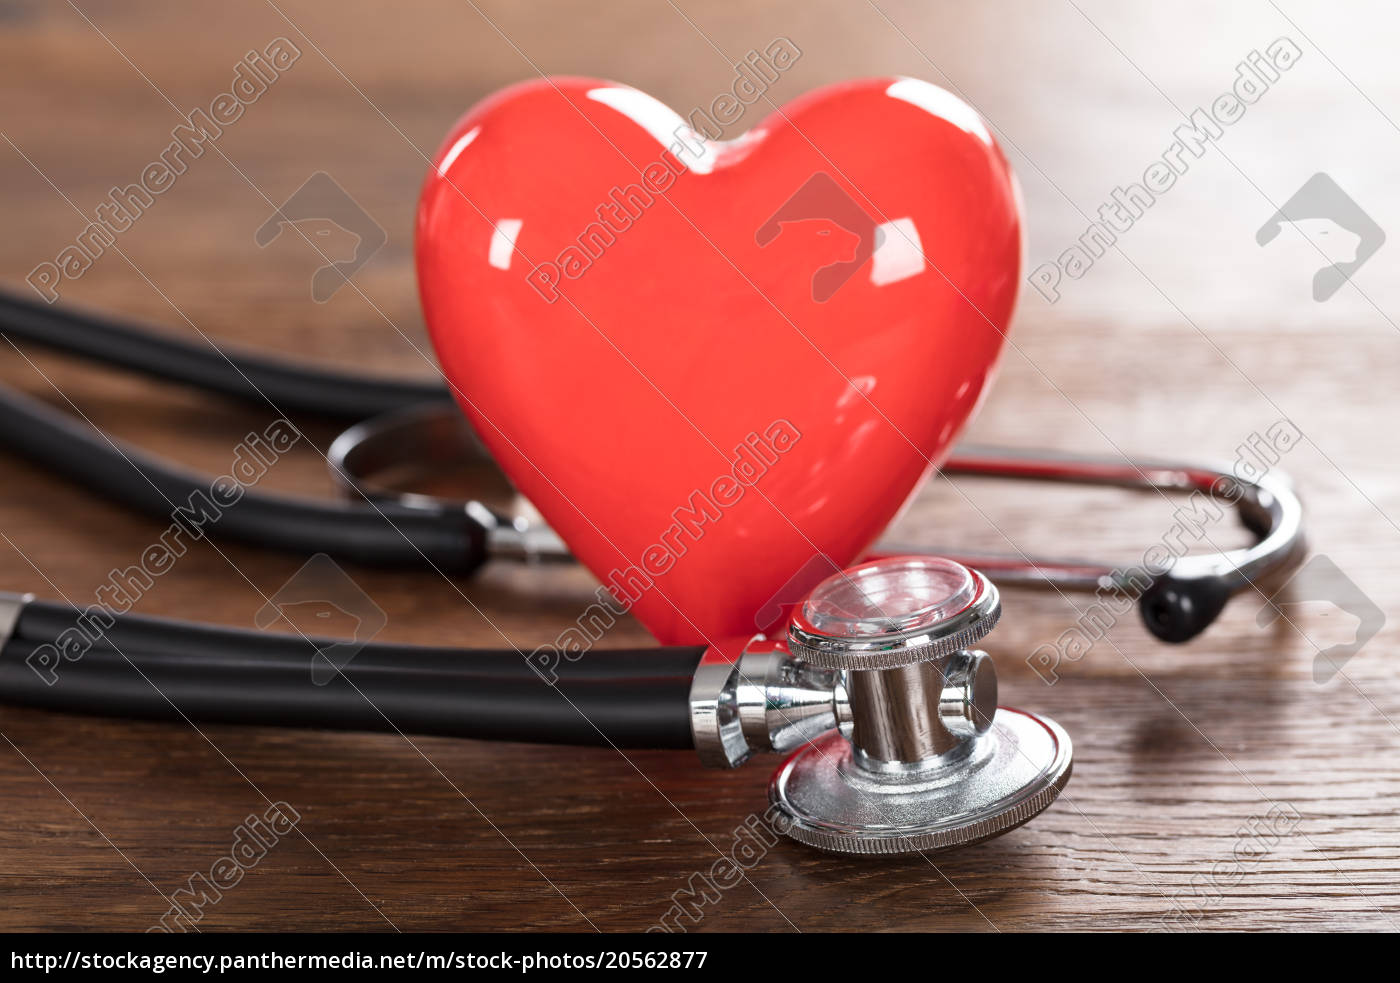 red, heart, with, stethoscope - 20562877